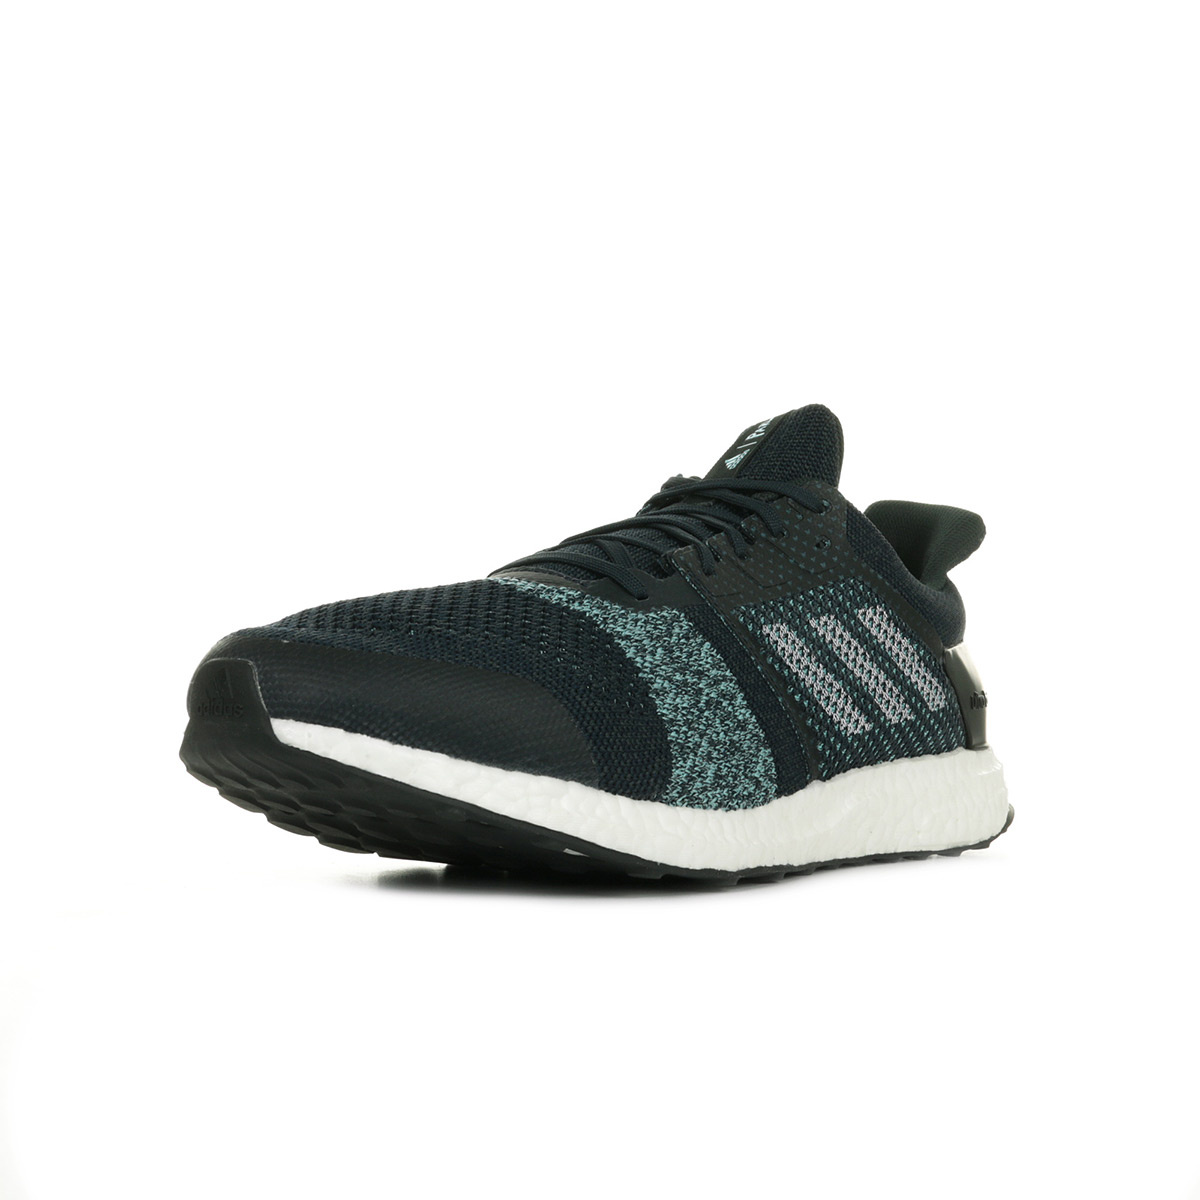 new products d82ae f3262 adidas Ultraboost ST Parley AC7586, Baskets mode homme